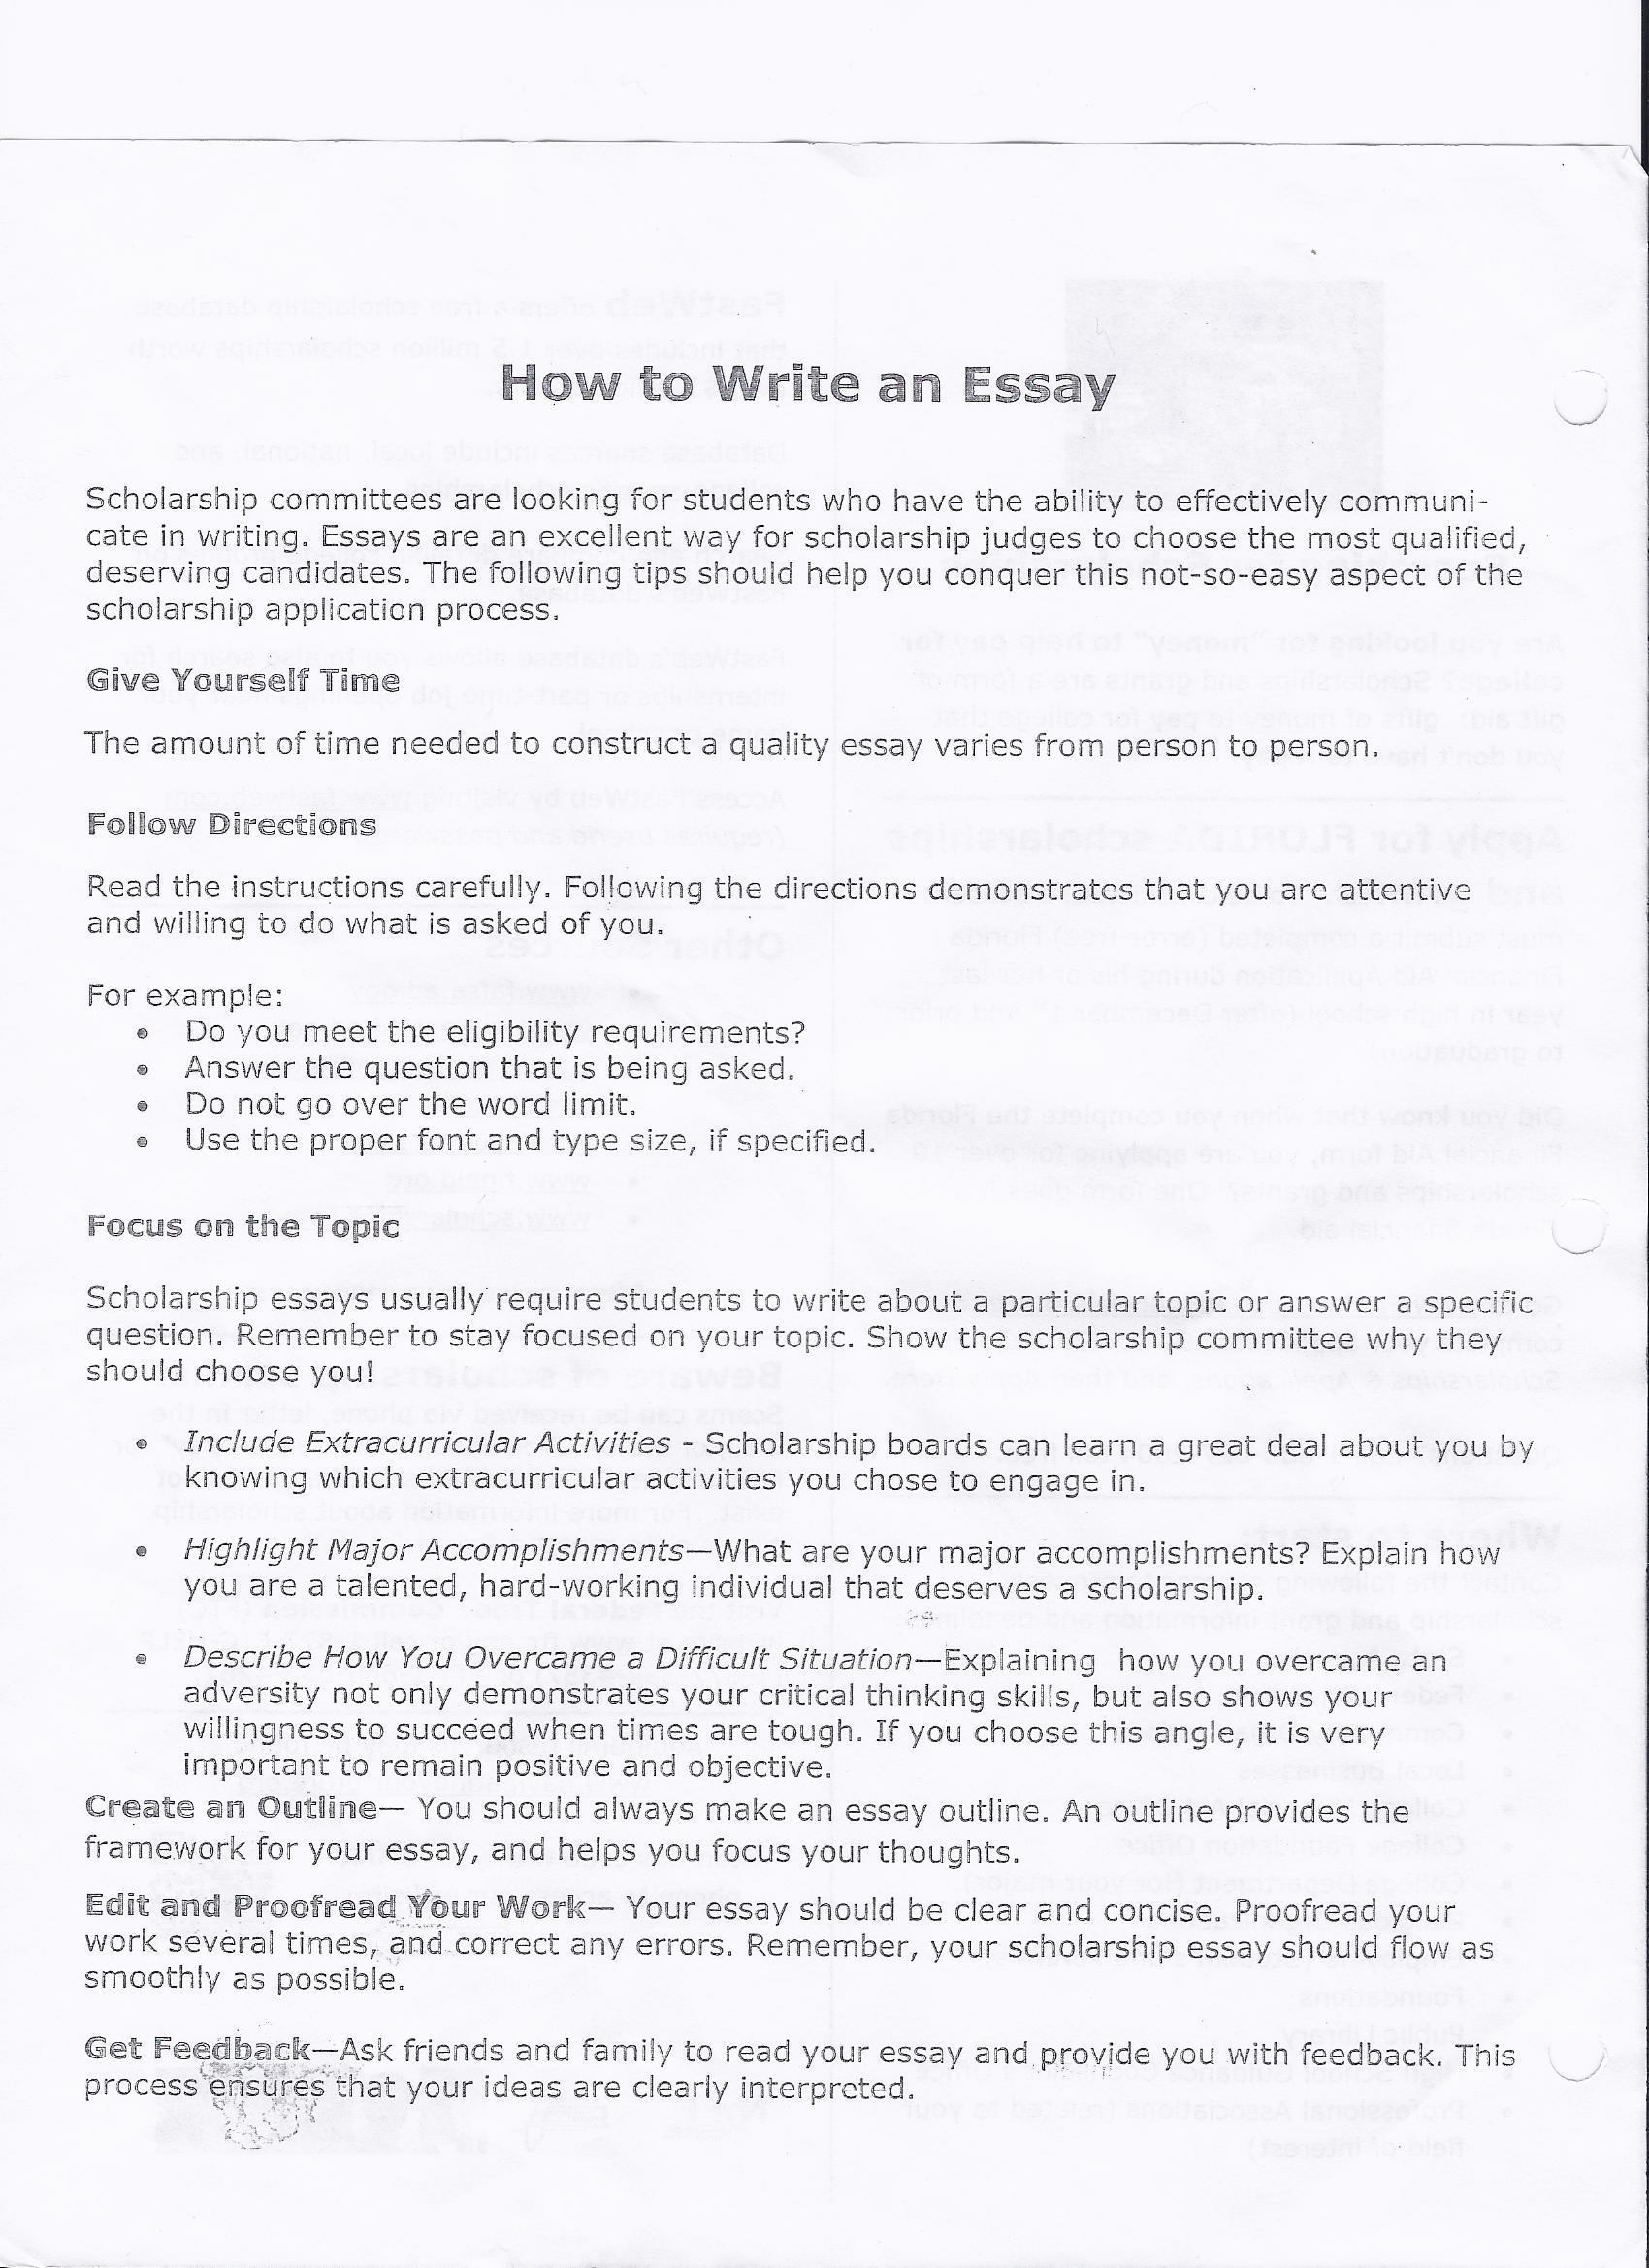 Owning a home vs renting essay